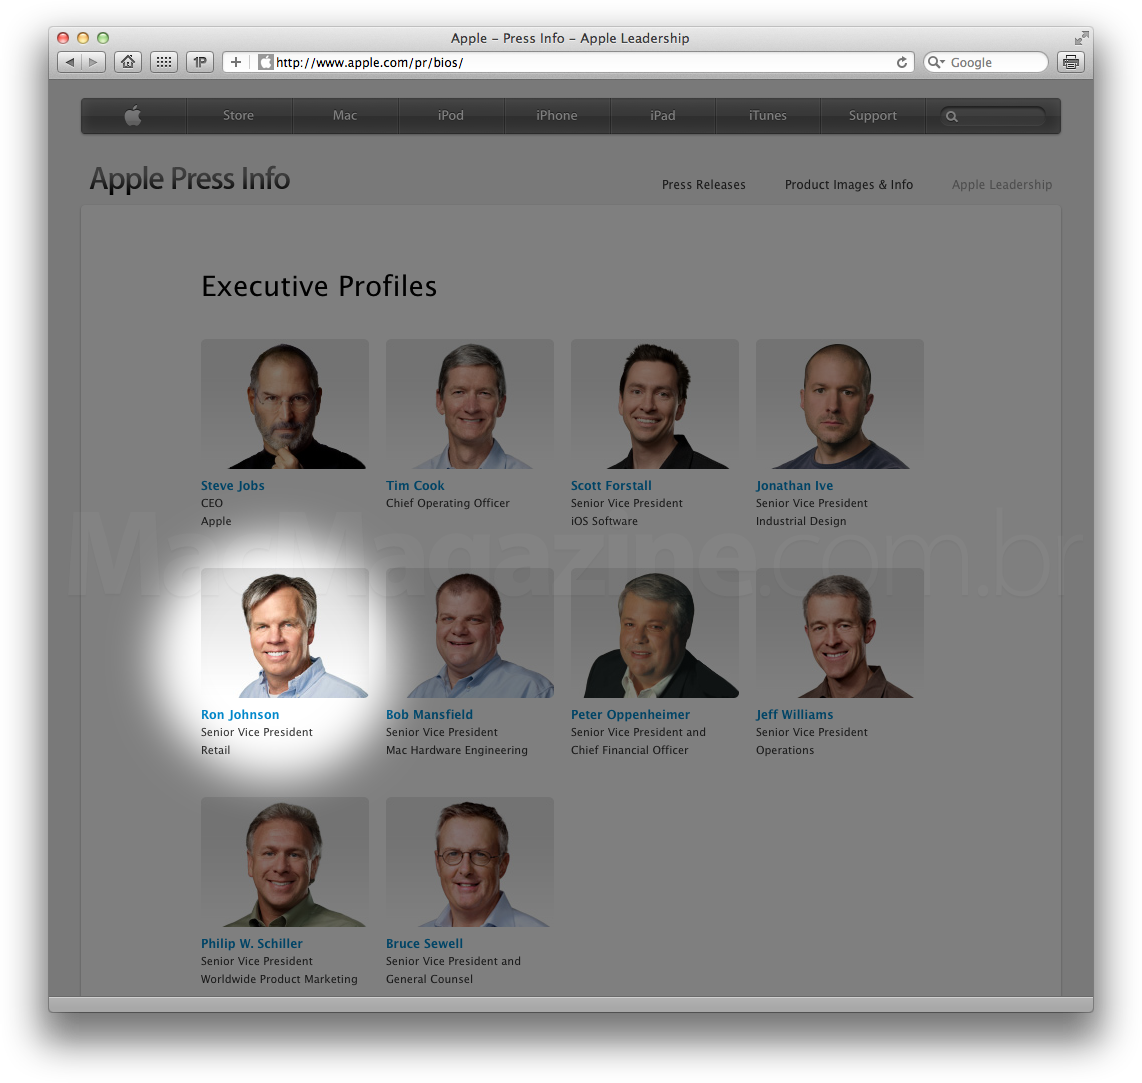 Ron Johnson entre os executivos da Apple